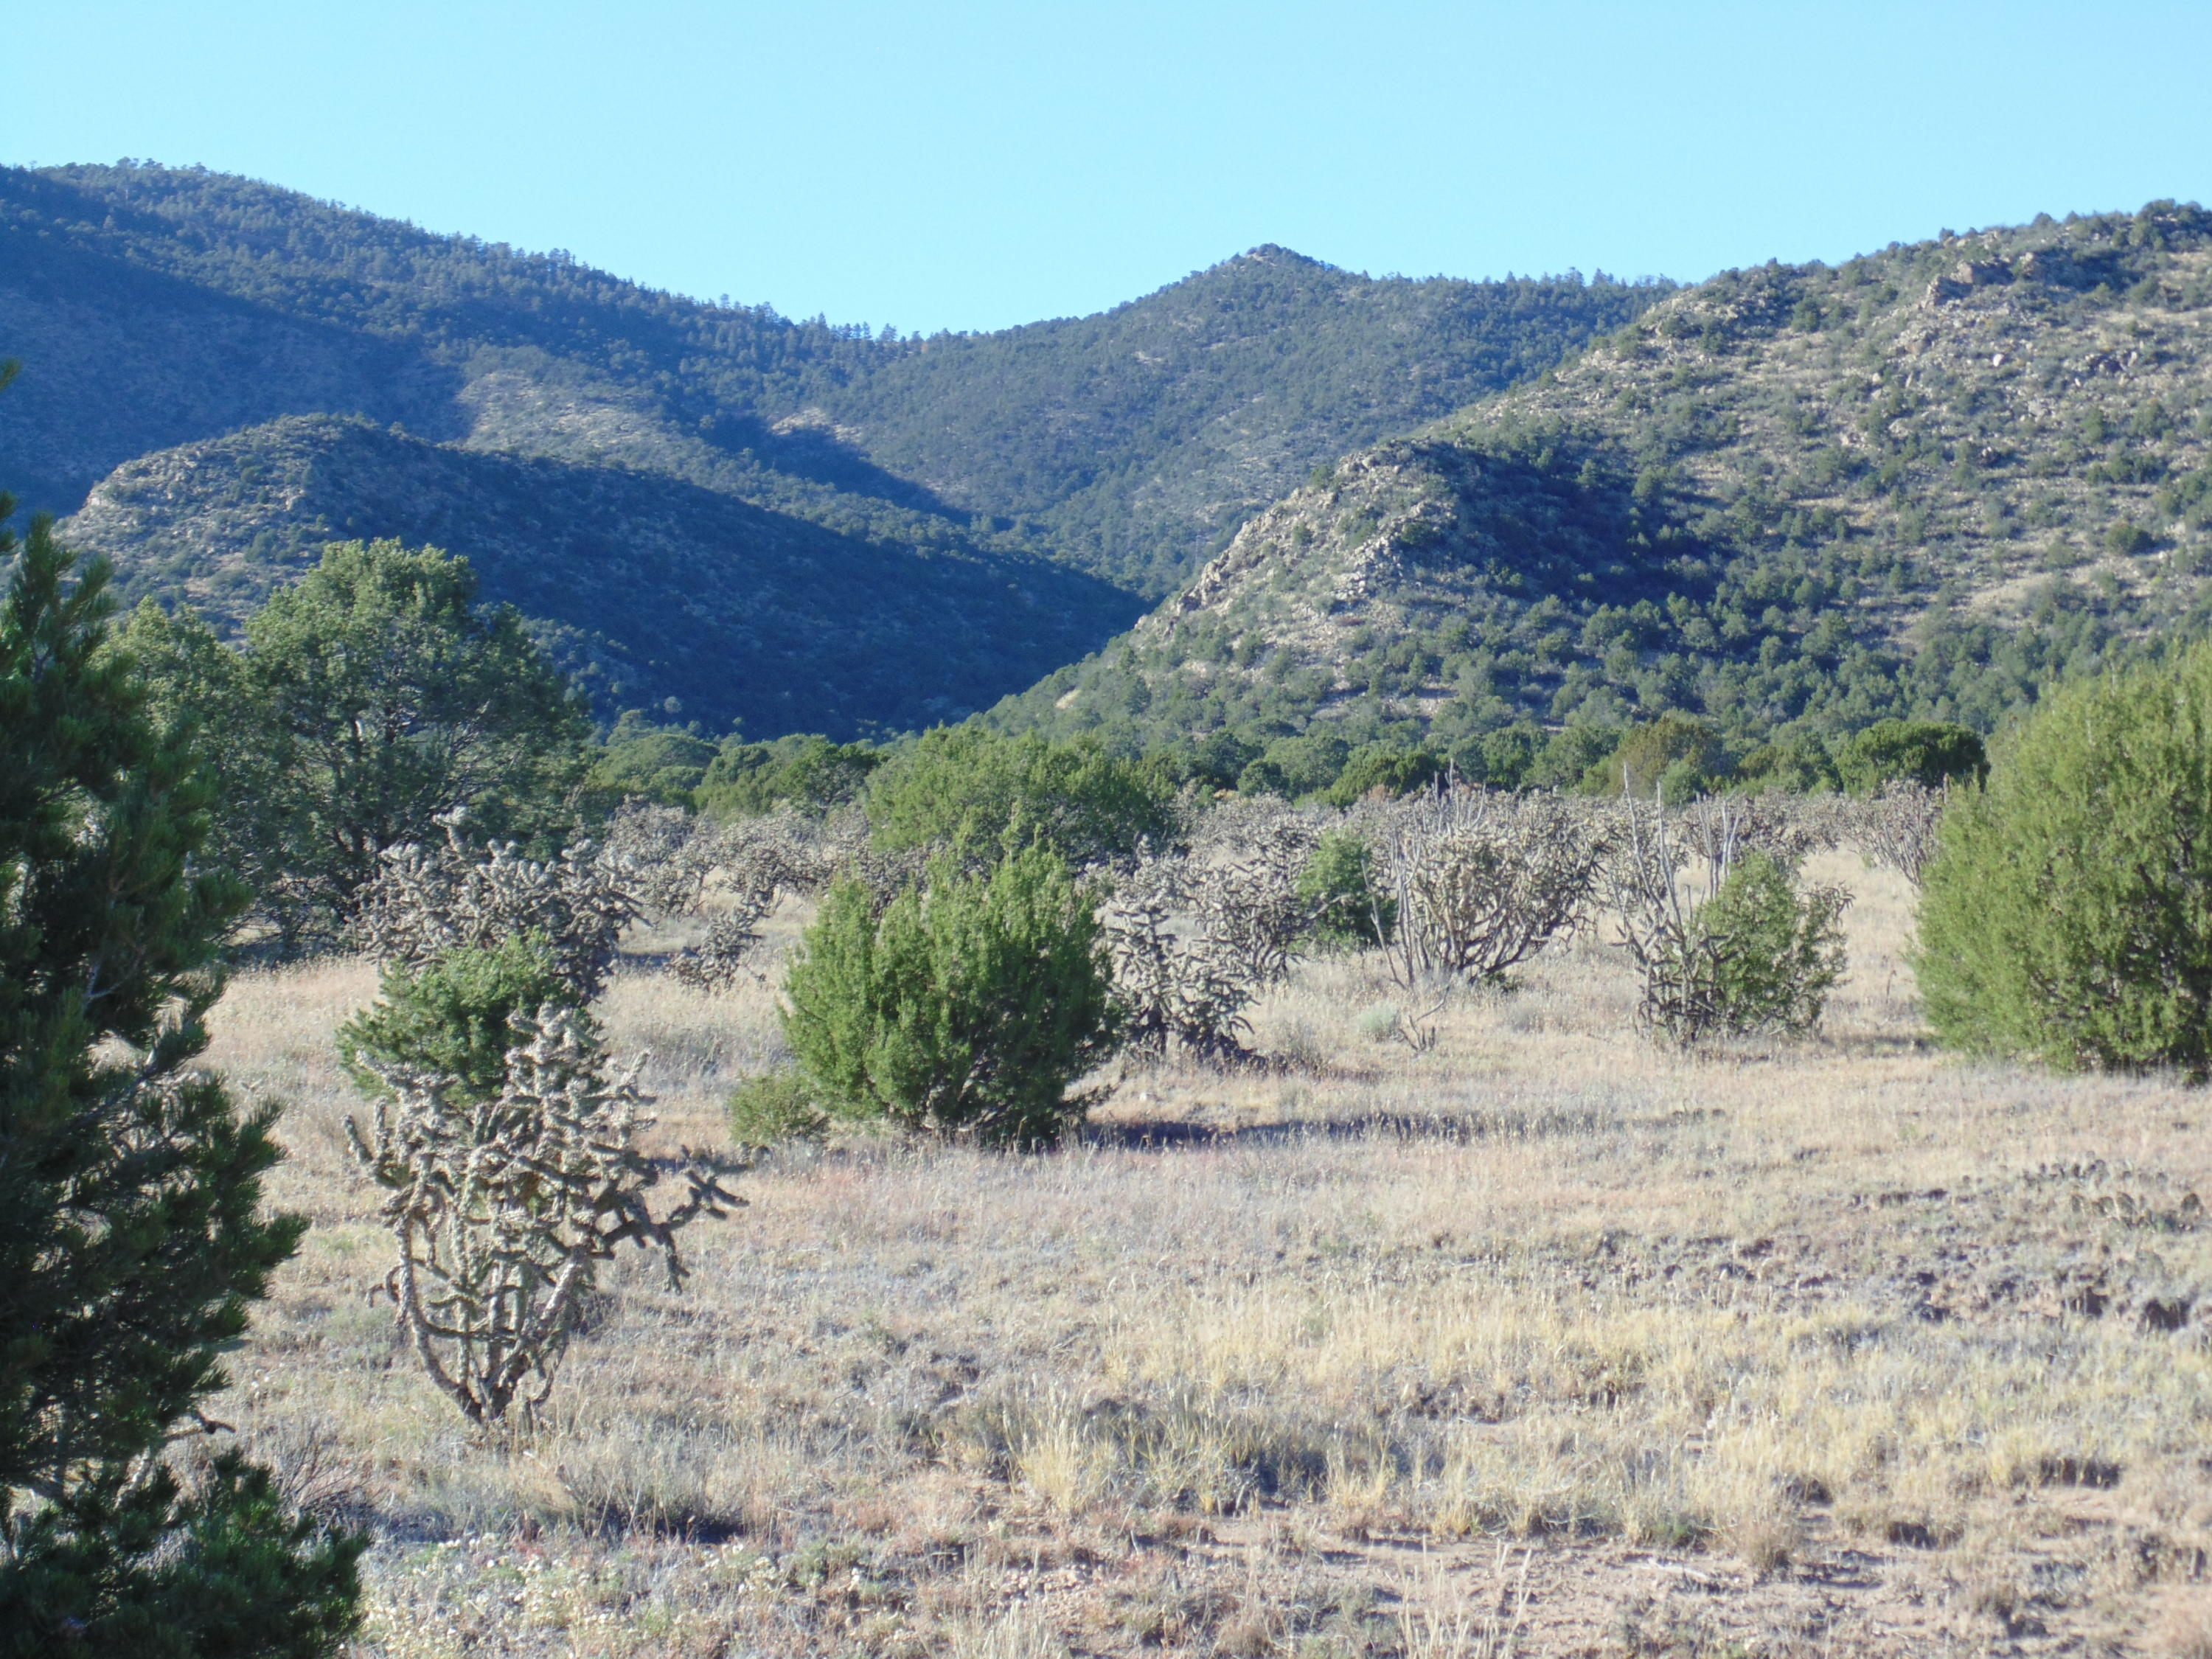 0 Sandoval Road, Edgewood, NM 87015 - Edgewood, NM real estate listing